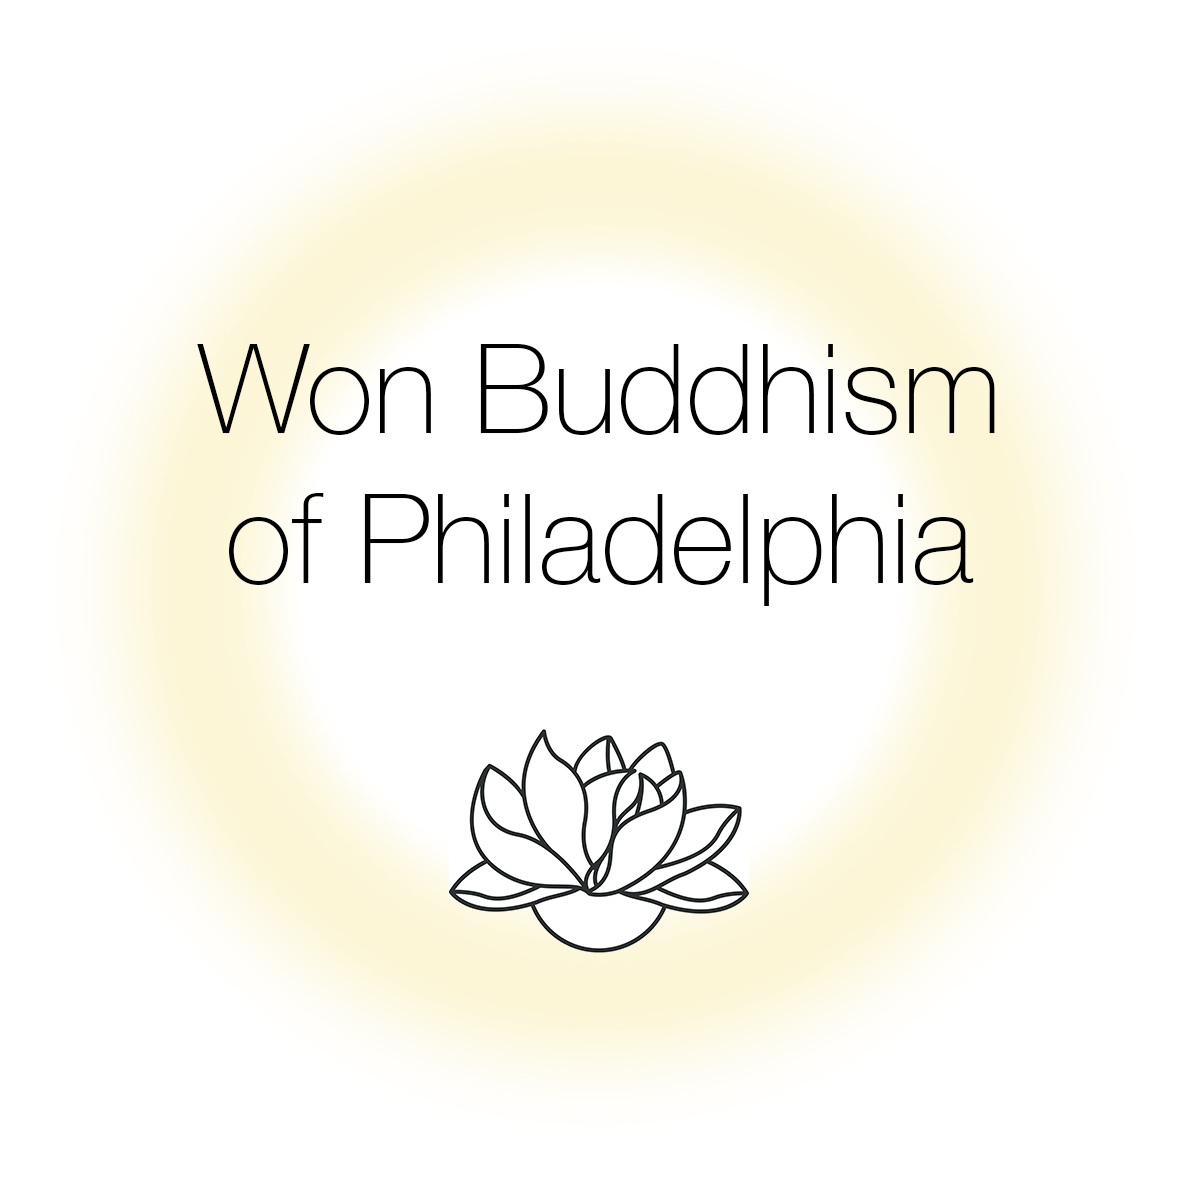 Won Buddhism of Philadelphia